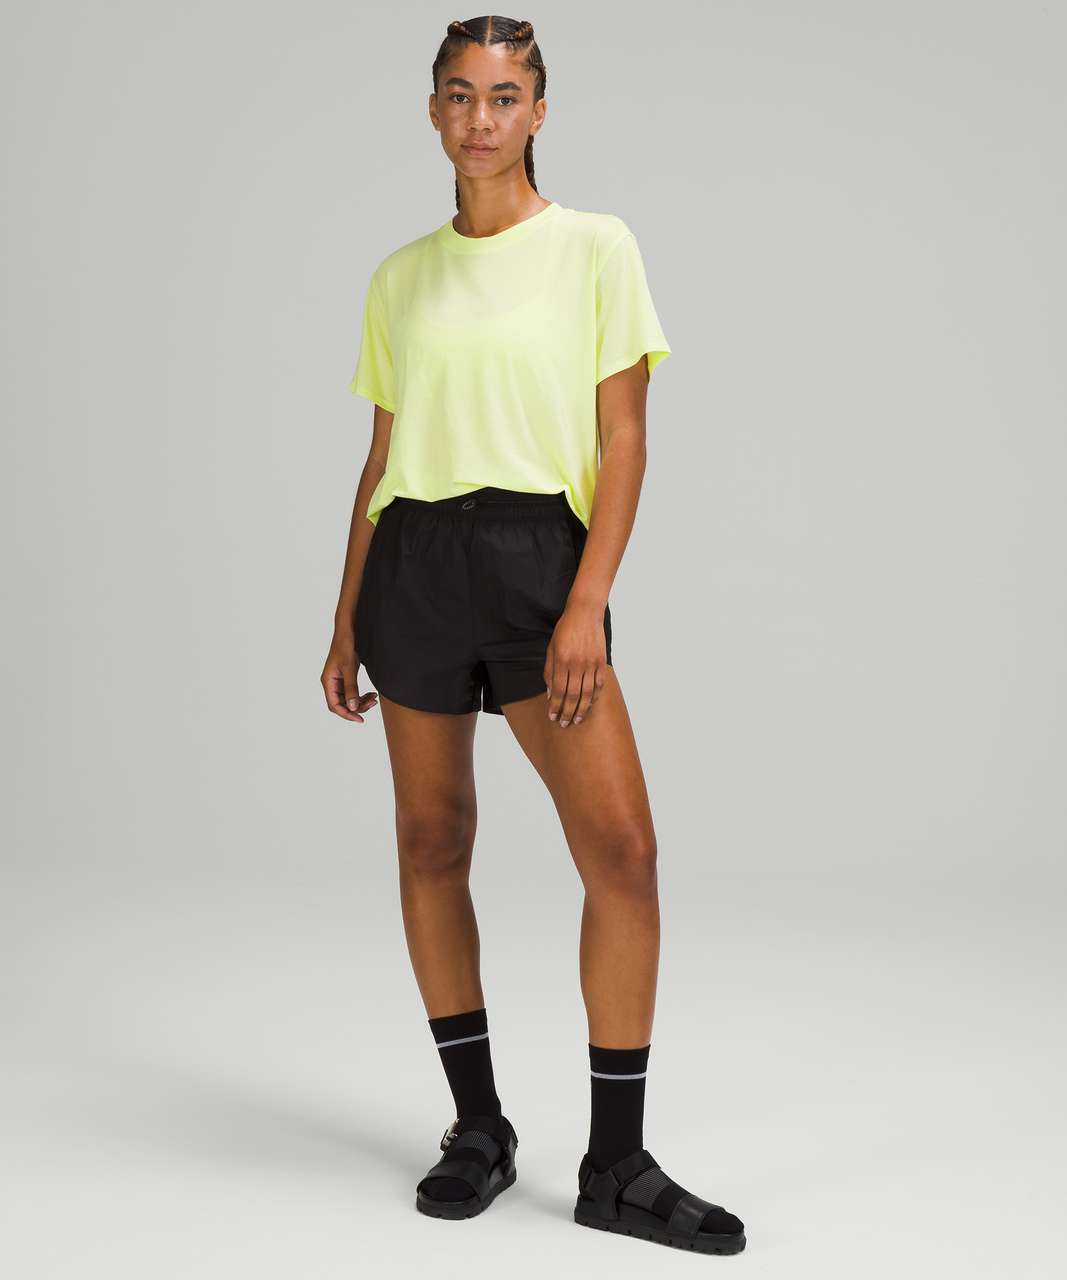 Lululemon All Yours Tee - Crispin Green